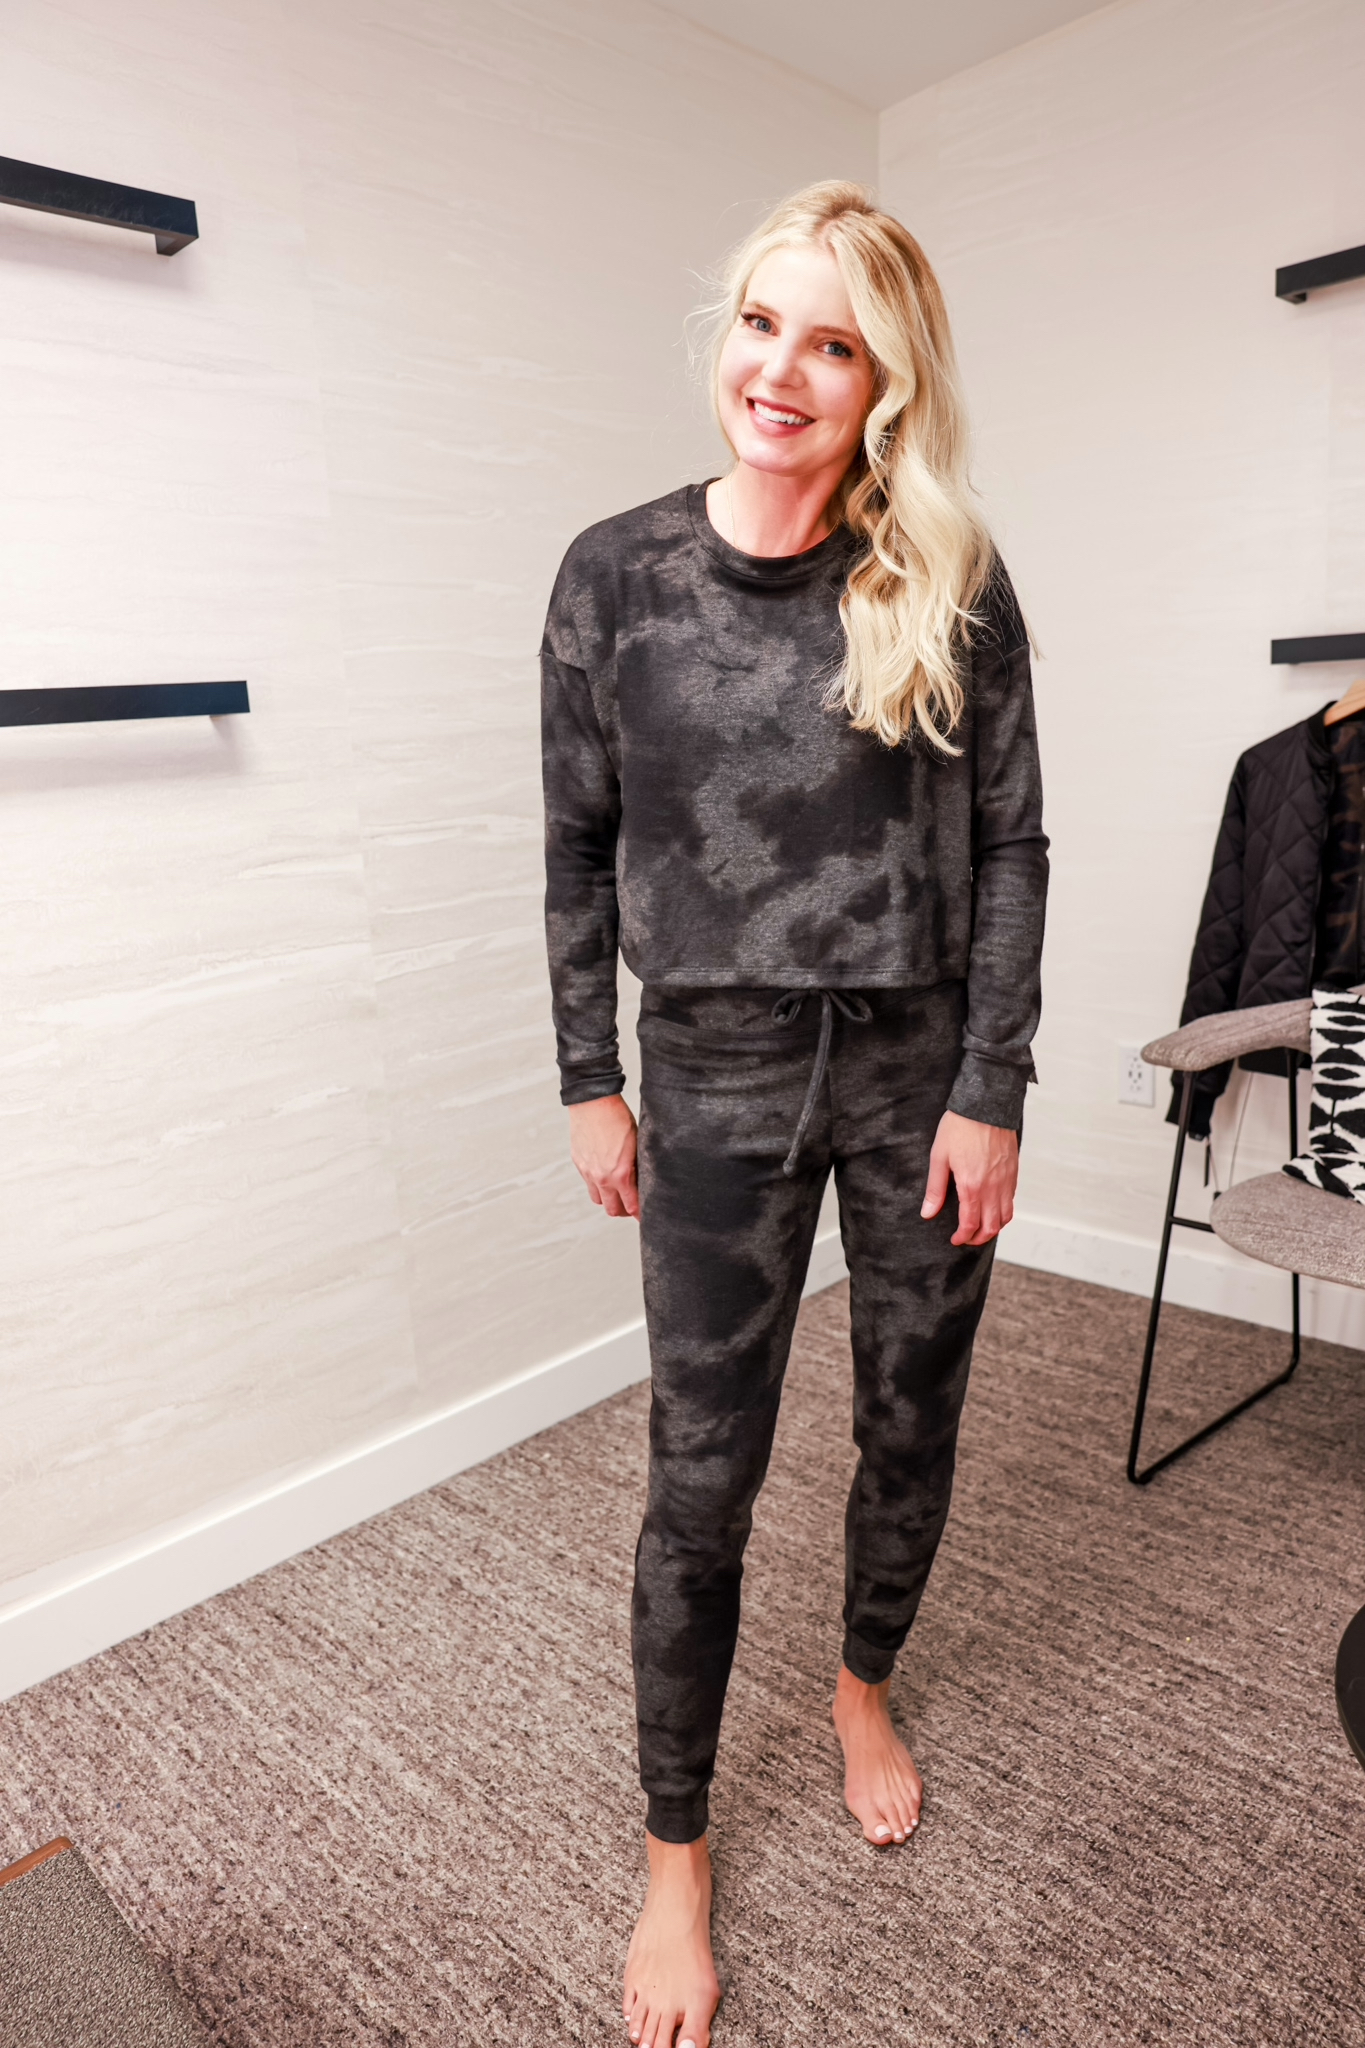 Nordstrom Anniversary Sale 2021 - Nordstrom Anniversary Sale Outfits on Erin Busbee - Beyond Yoga Printed Loungewear Set - Beyond Yoga Joggers & Crop Sweater